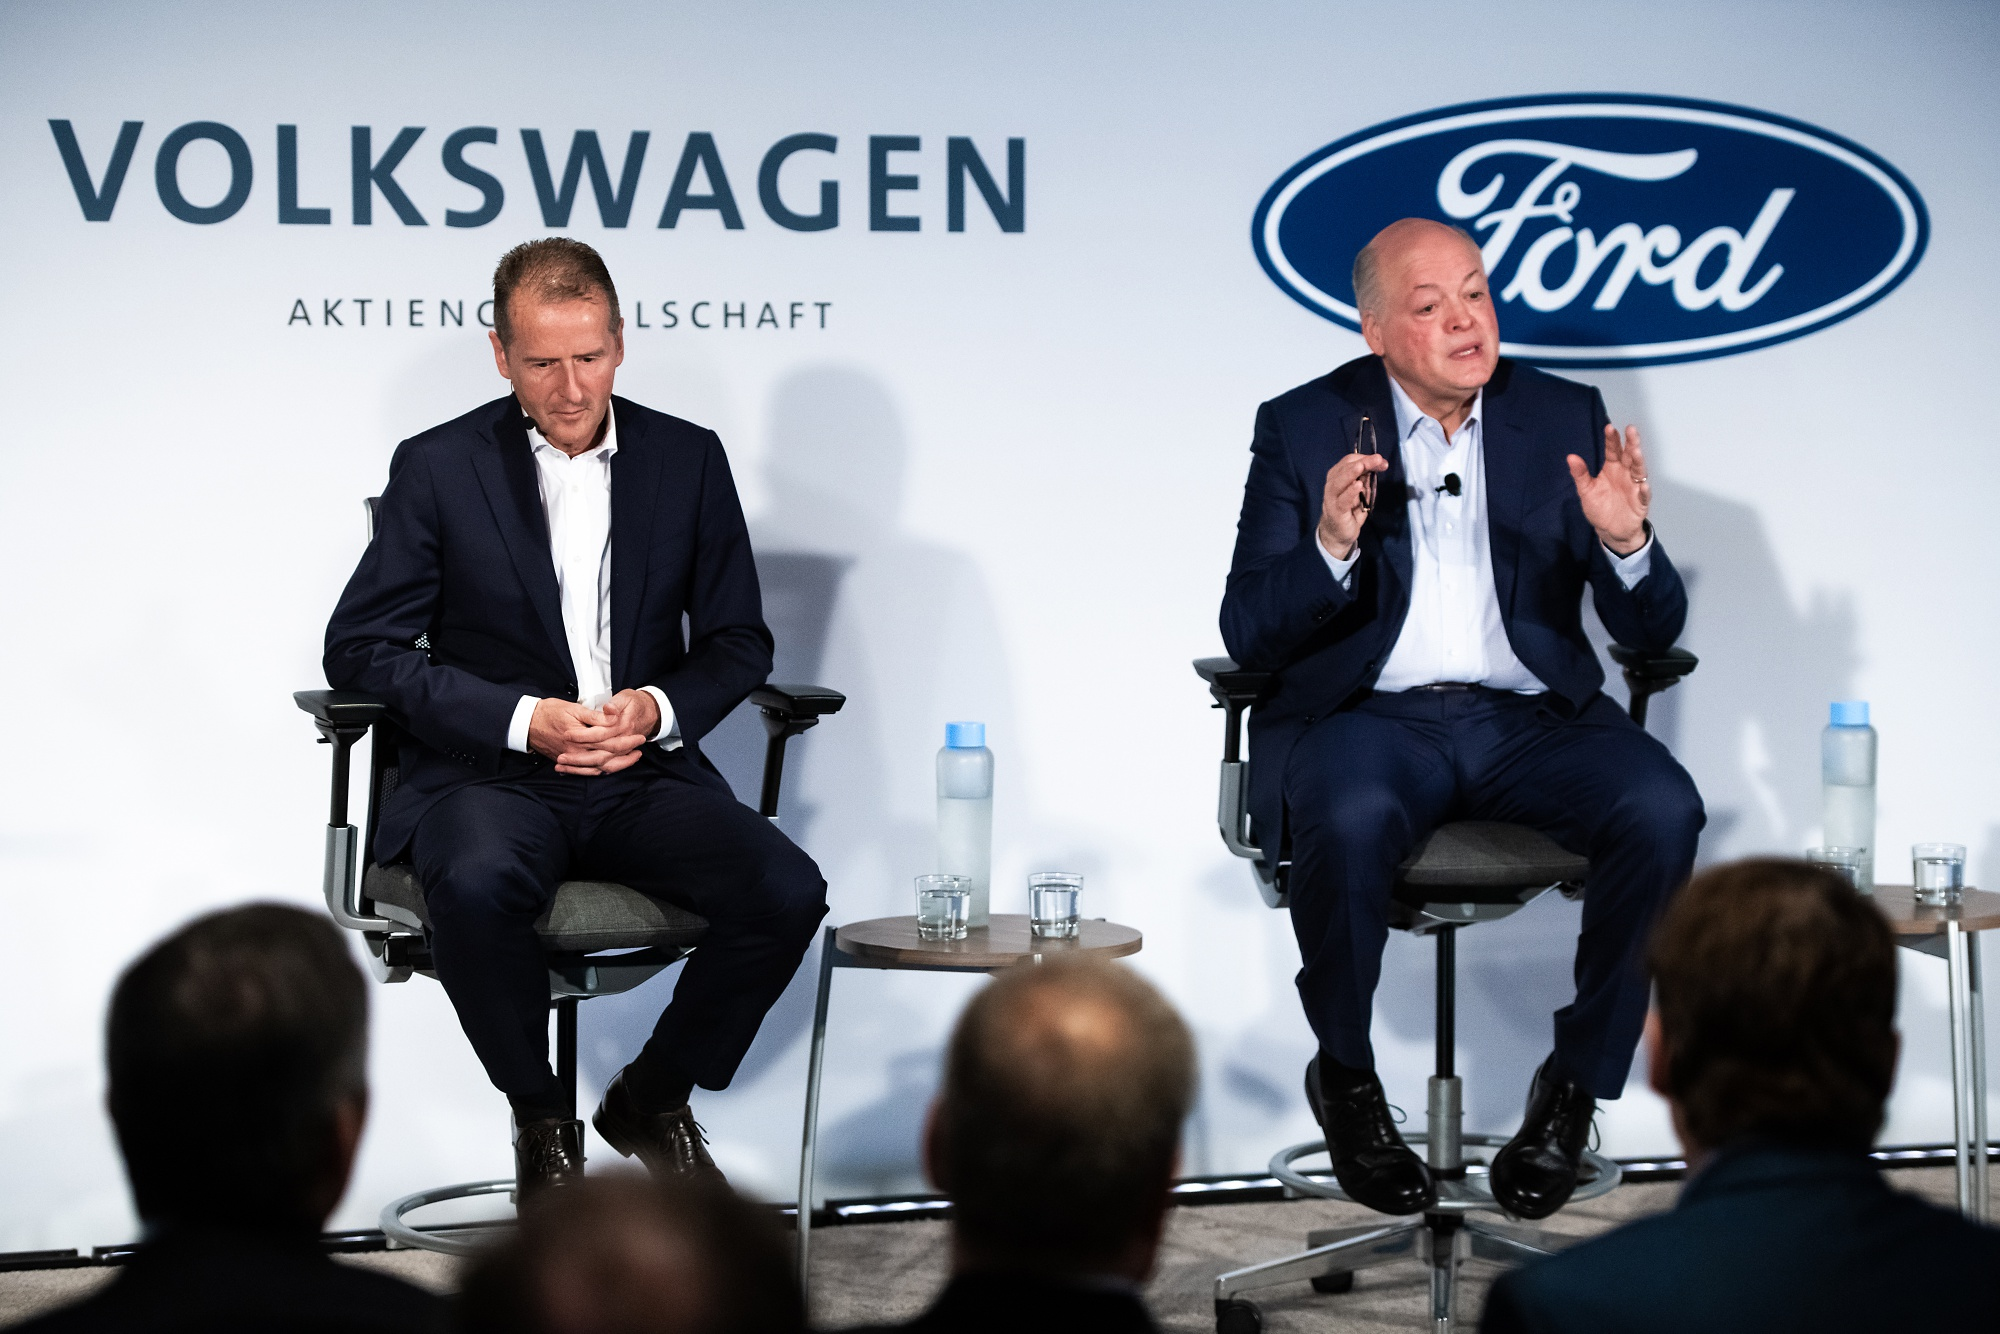 Volkswagen And Ford Extend Collaboration To Electric, Self-Driving Cars